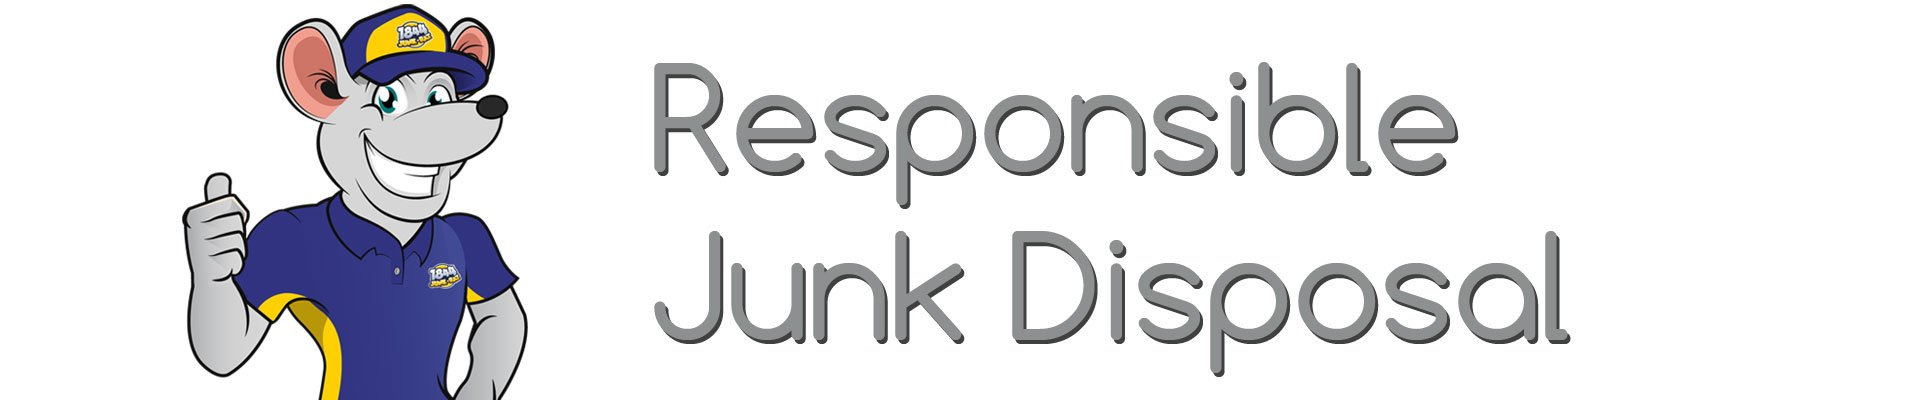 responsible junk disposal